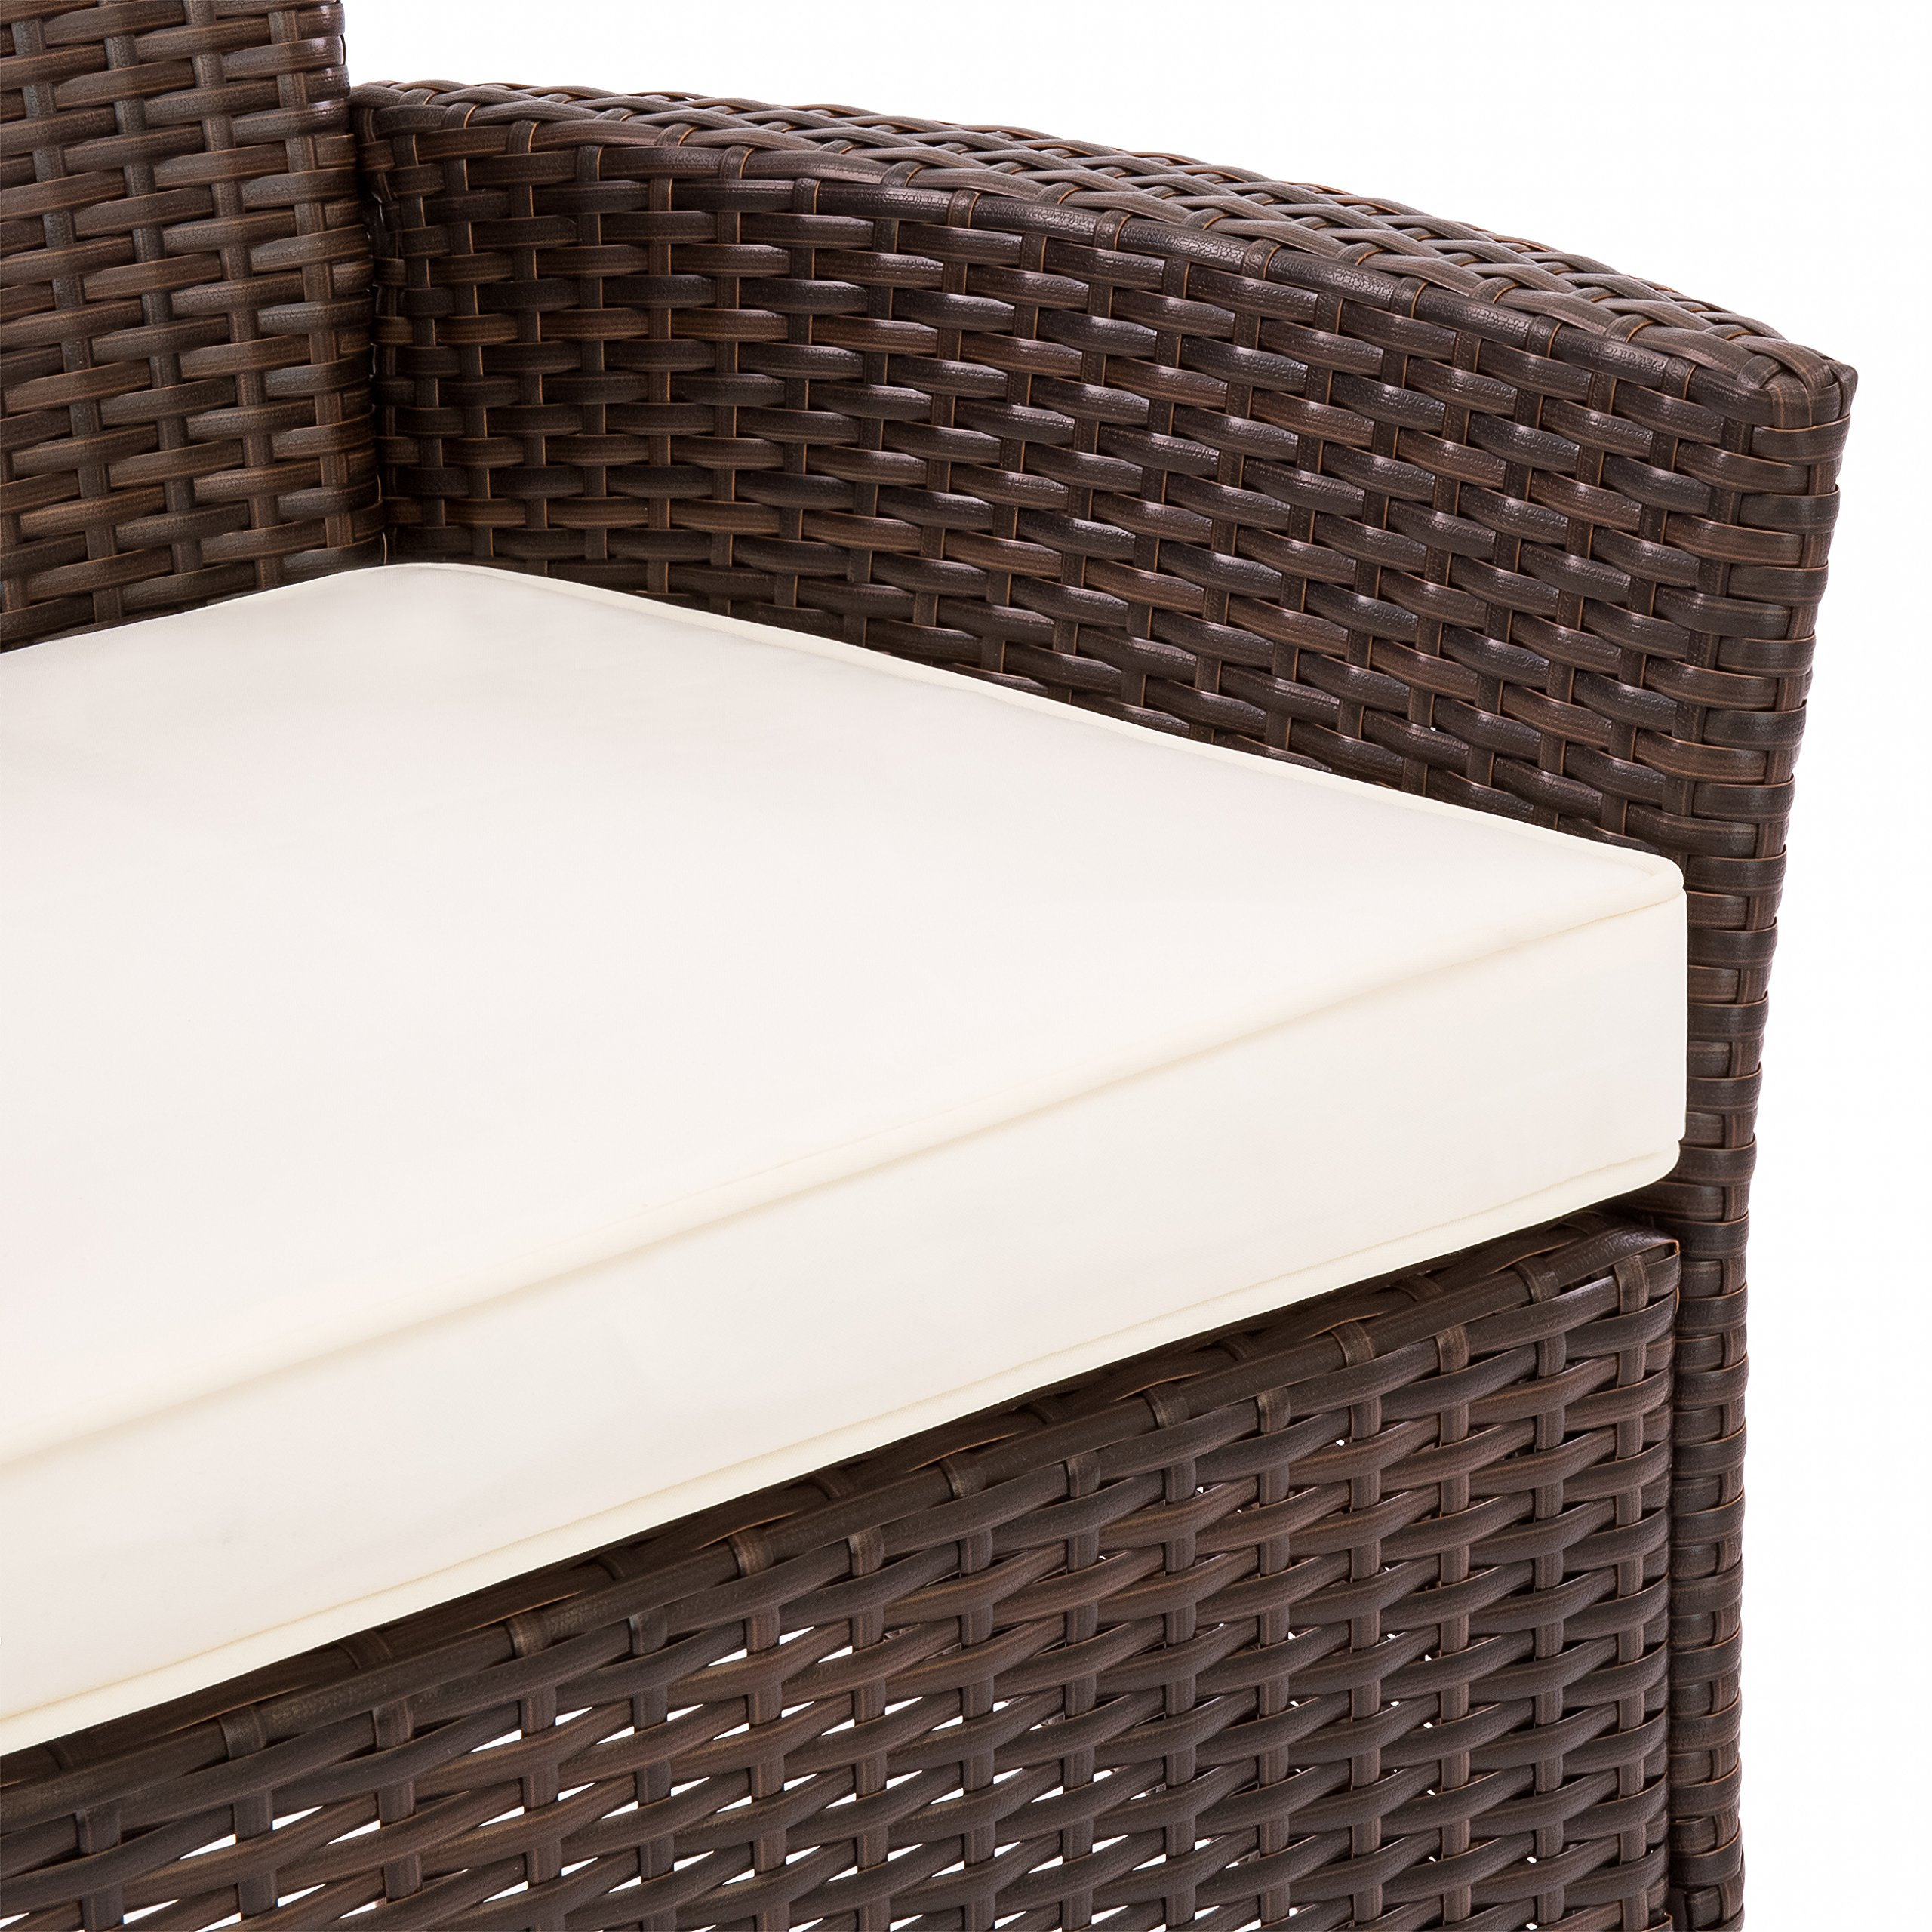 Best Choice Products Set of 2 Modern Contemporary Wicker Patio Dining Chairs w/Water Resistant Cushion - Brown by Best Choice Products (Image #3)